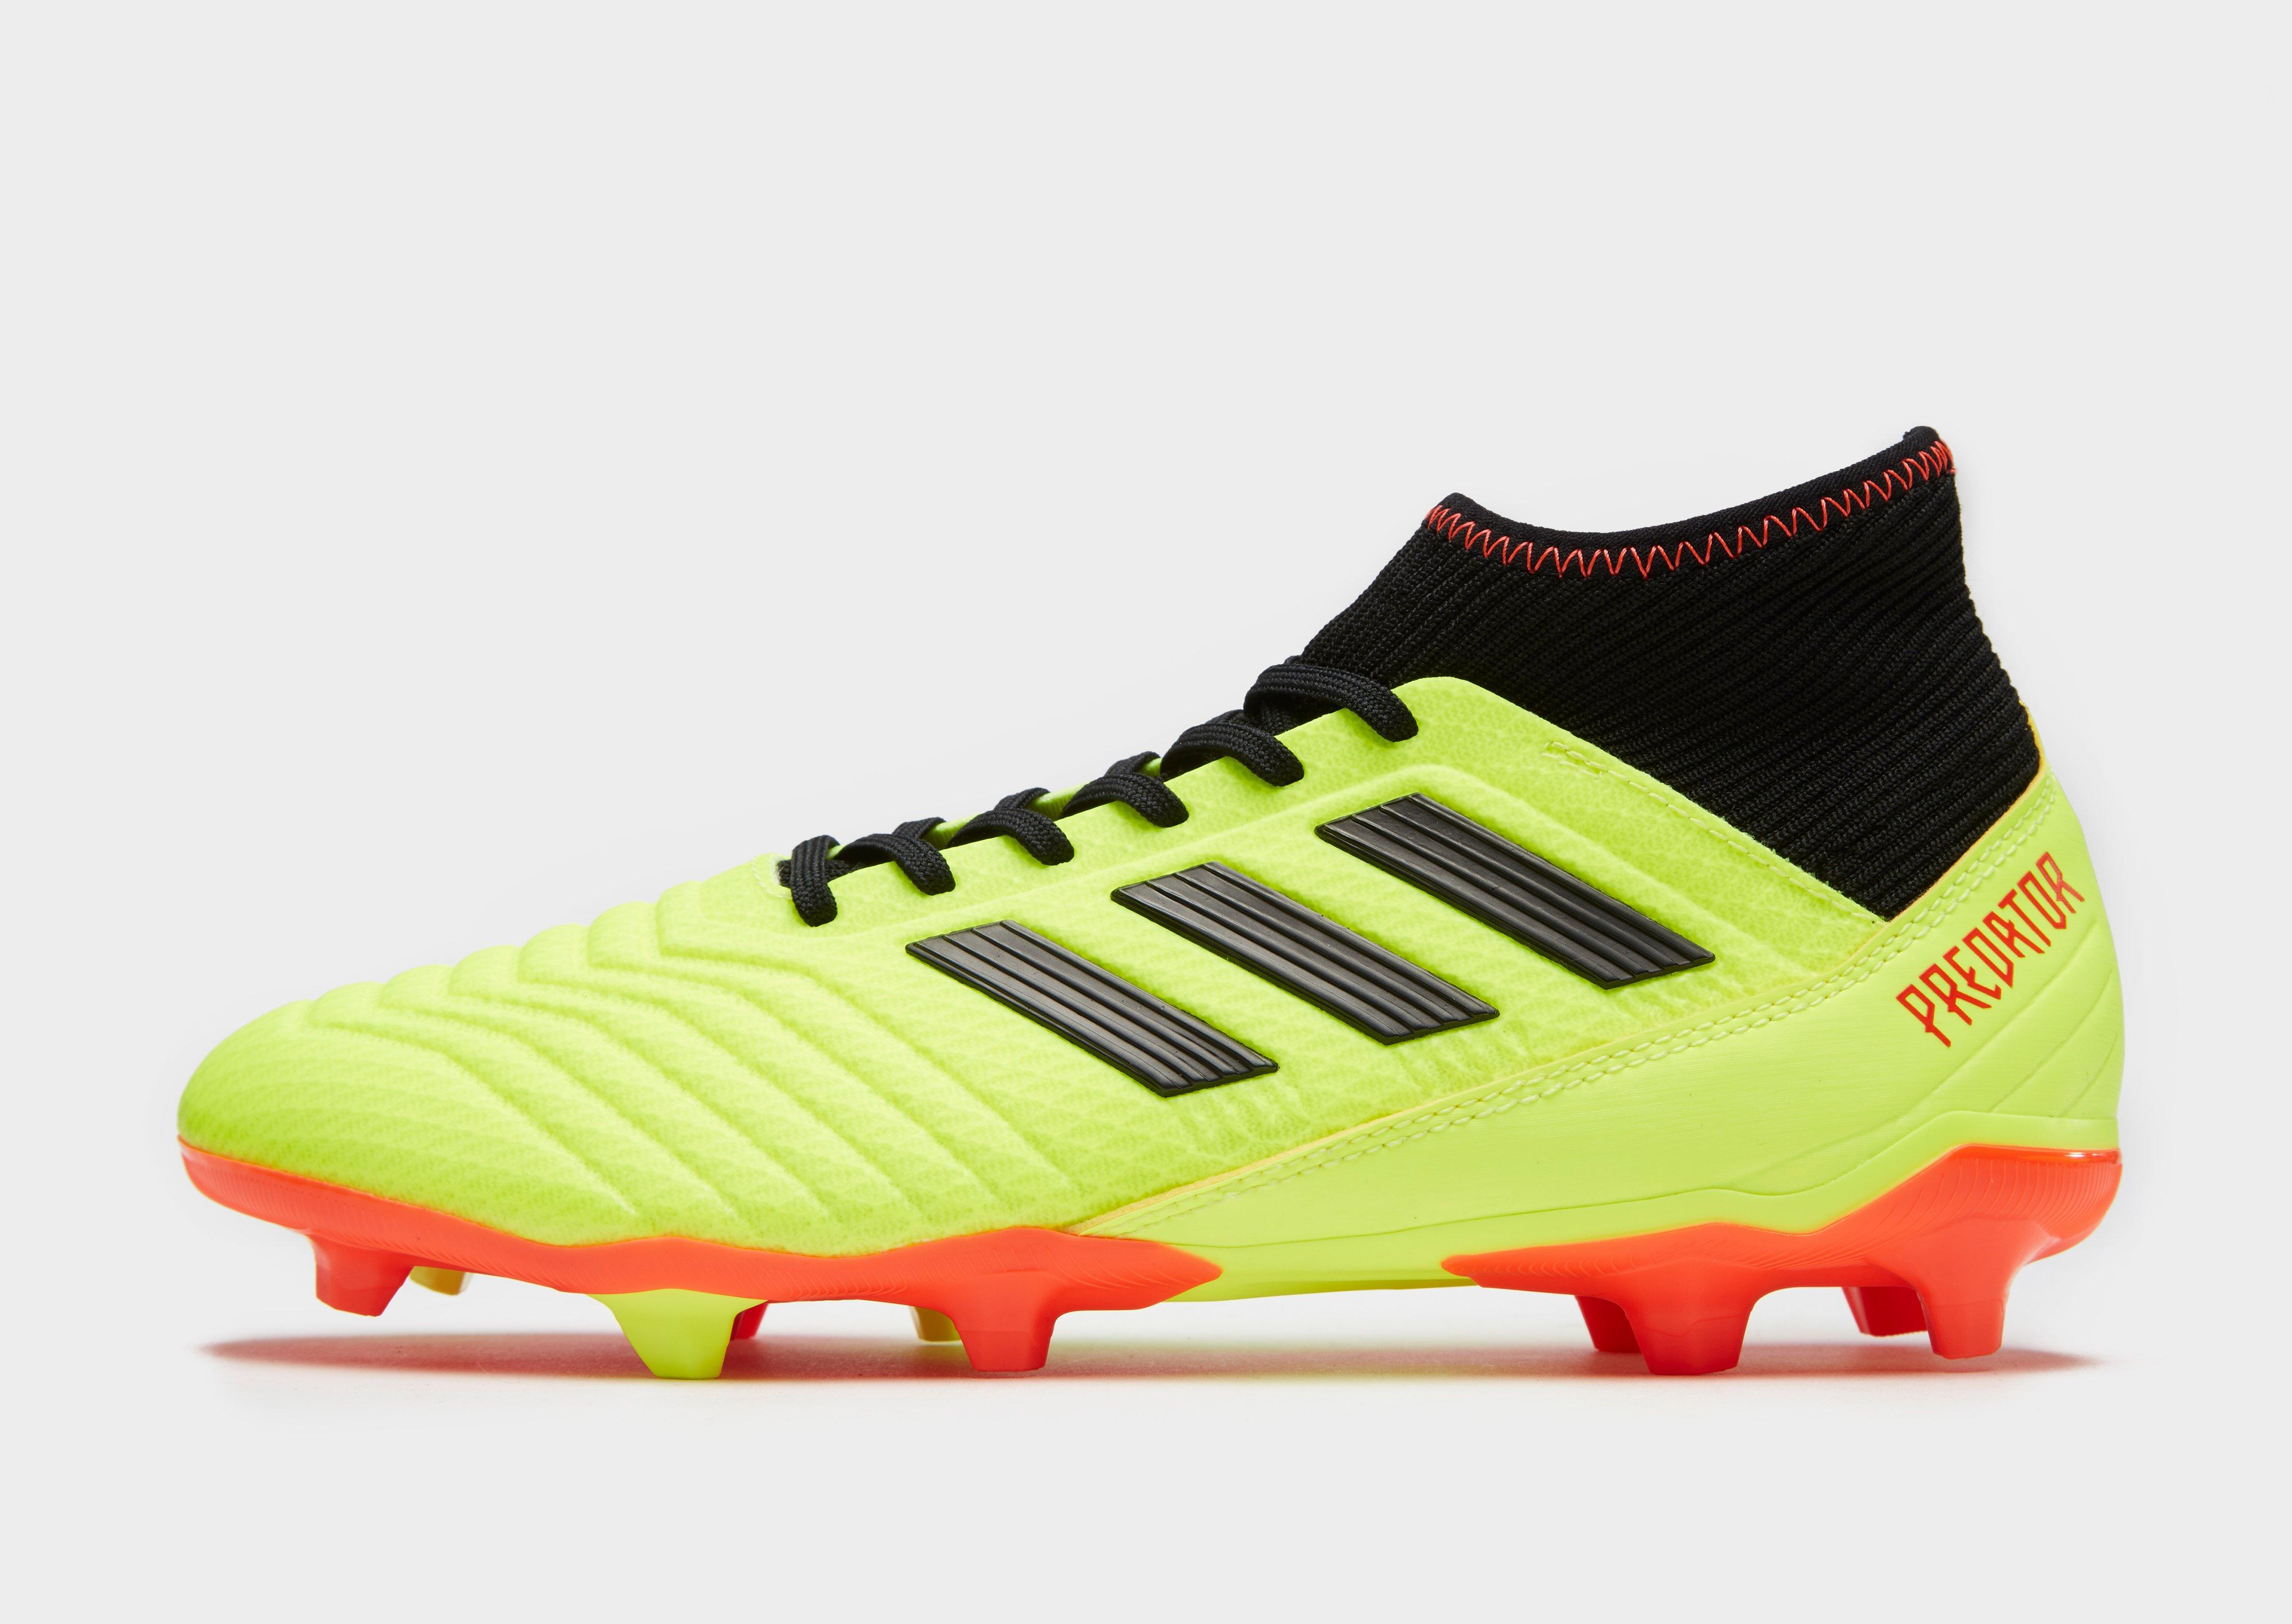 Homme Adidas Predator Chaussure Pas Cher Outlet